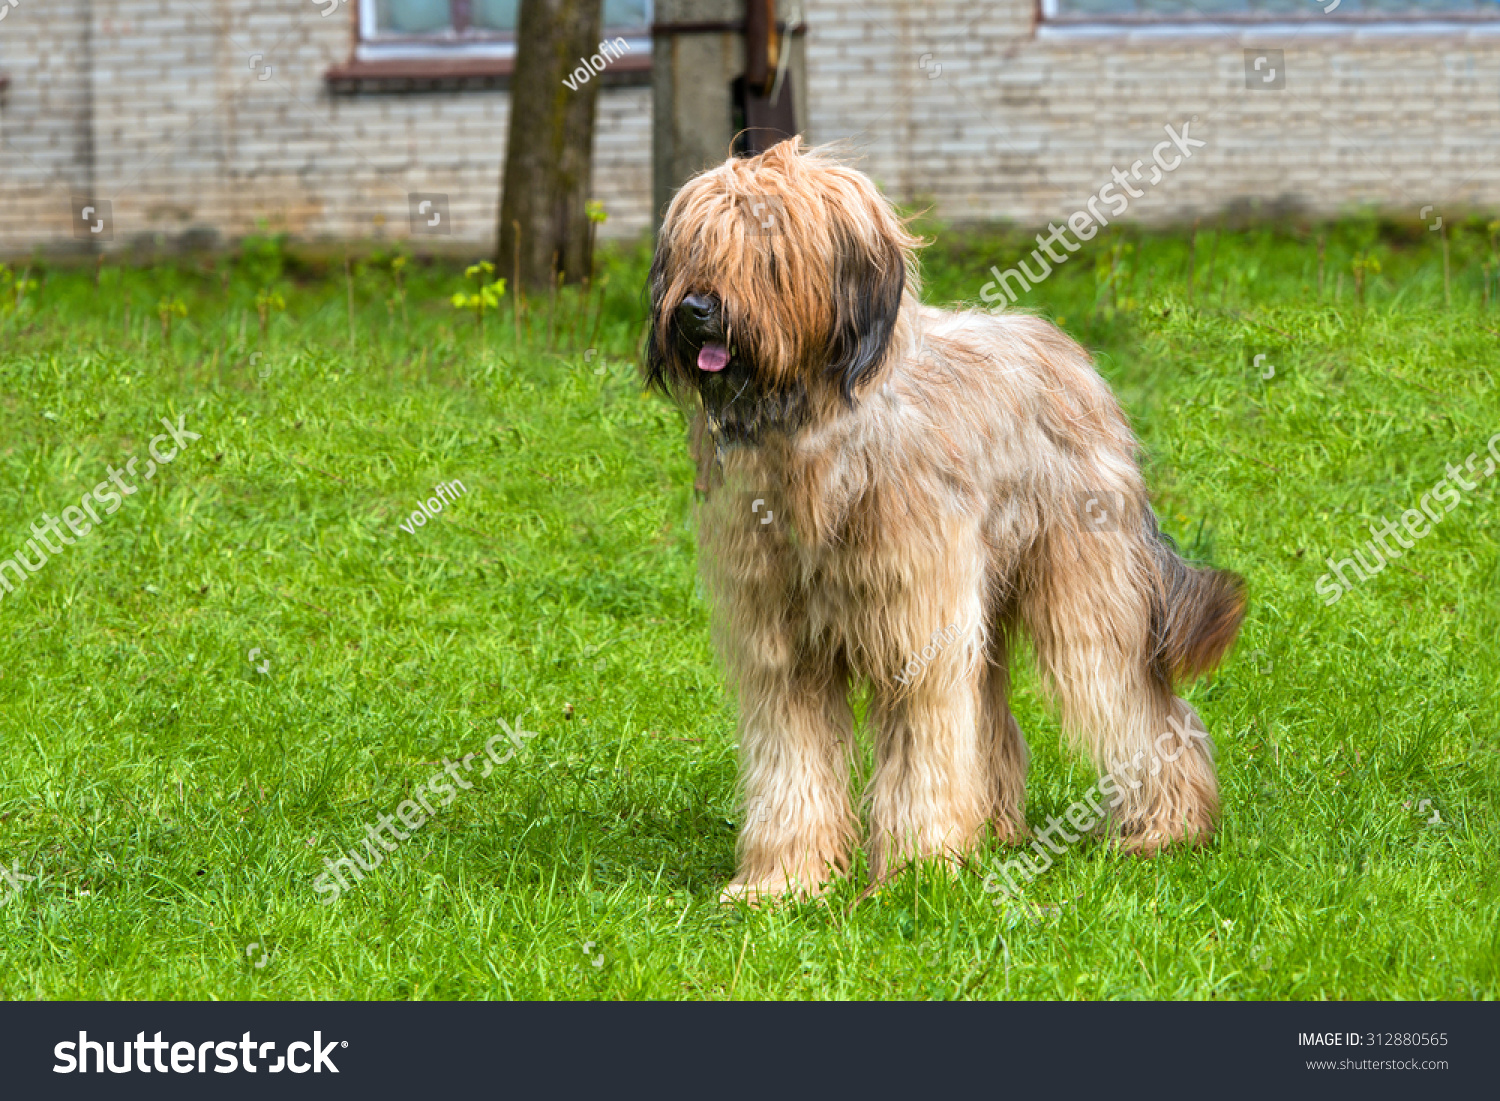 Briard stands. The Briard stands on the grass in the park.   #312880565